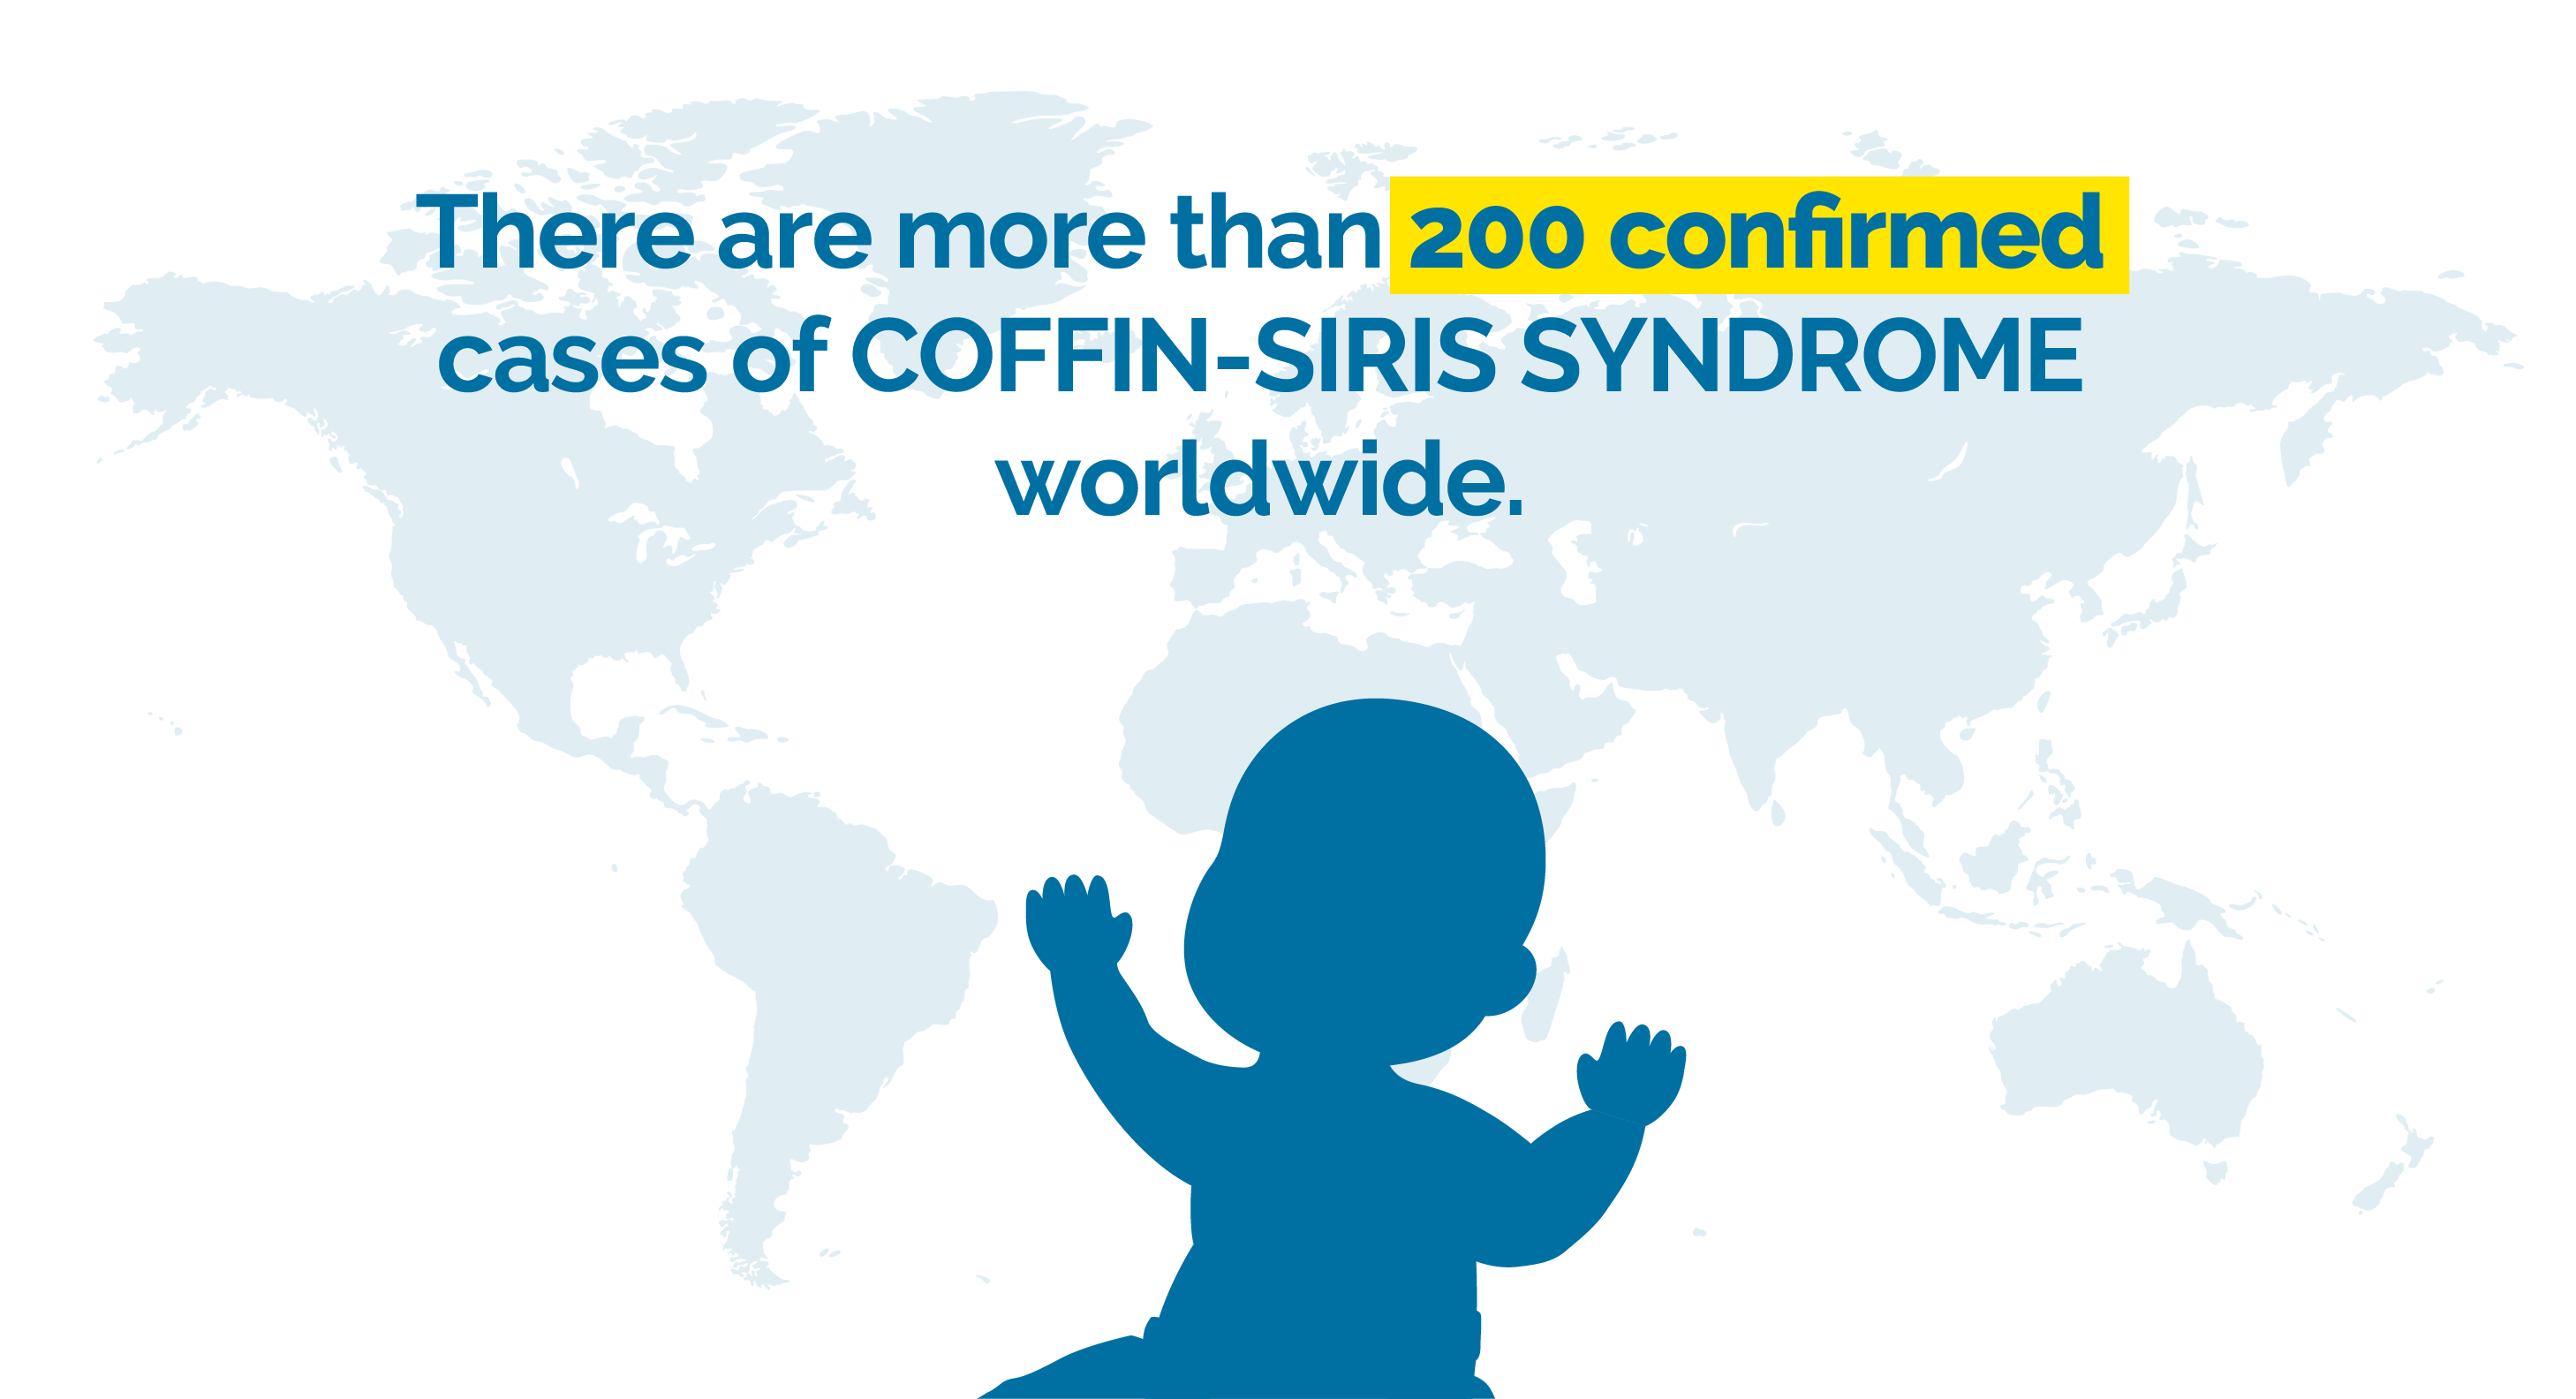 """Map background with the silhouette of a baby and words saying """"There are more than 200 confirmed cases of Coffin-Siris syndrome worldwide."""""""